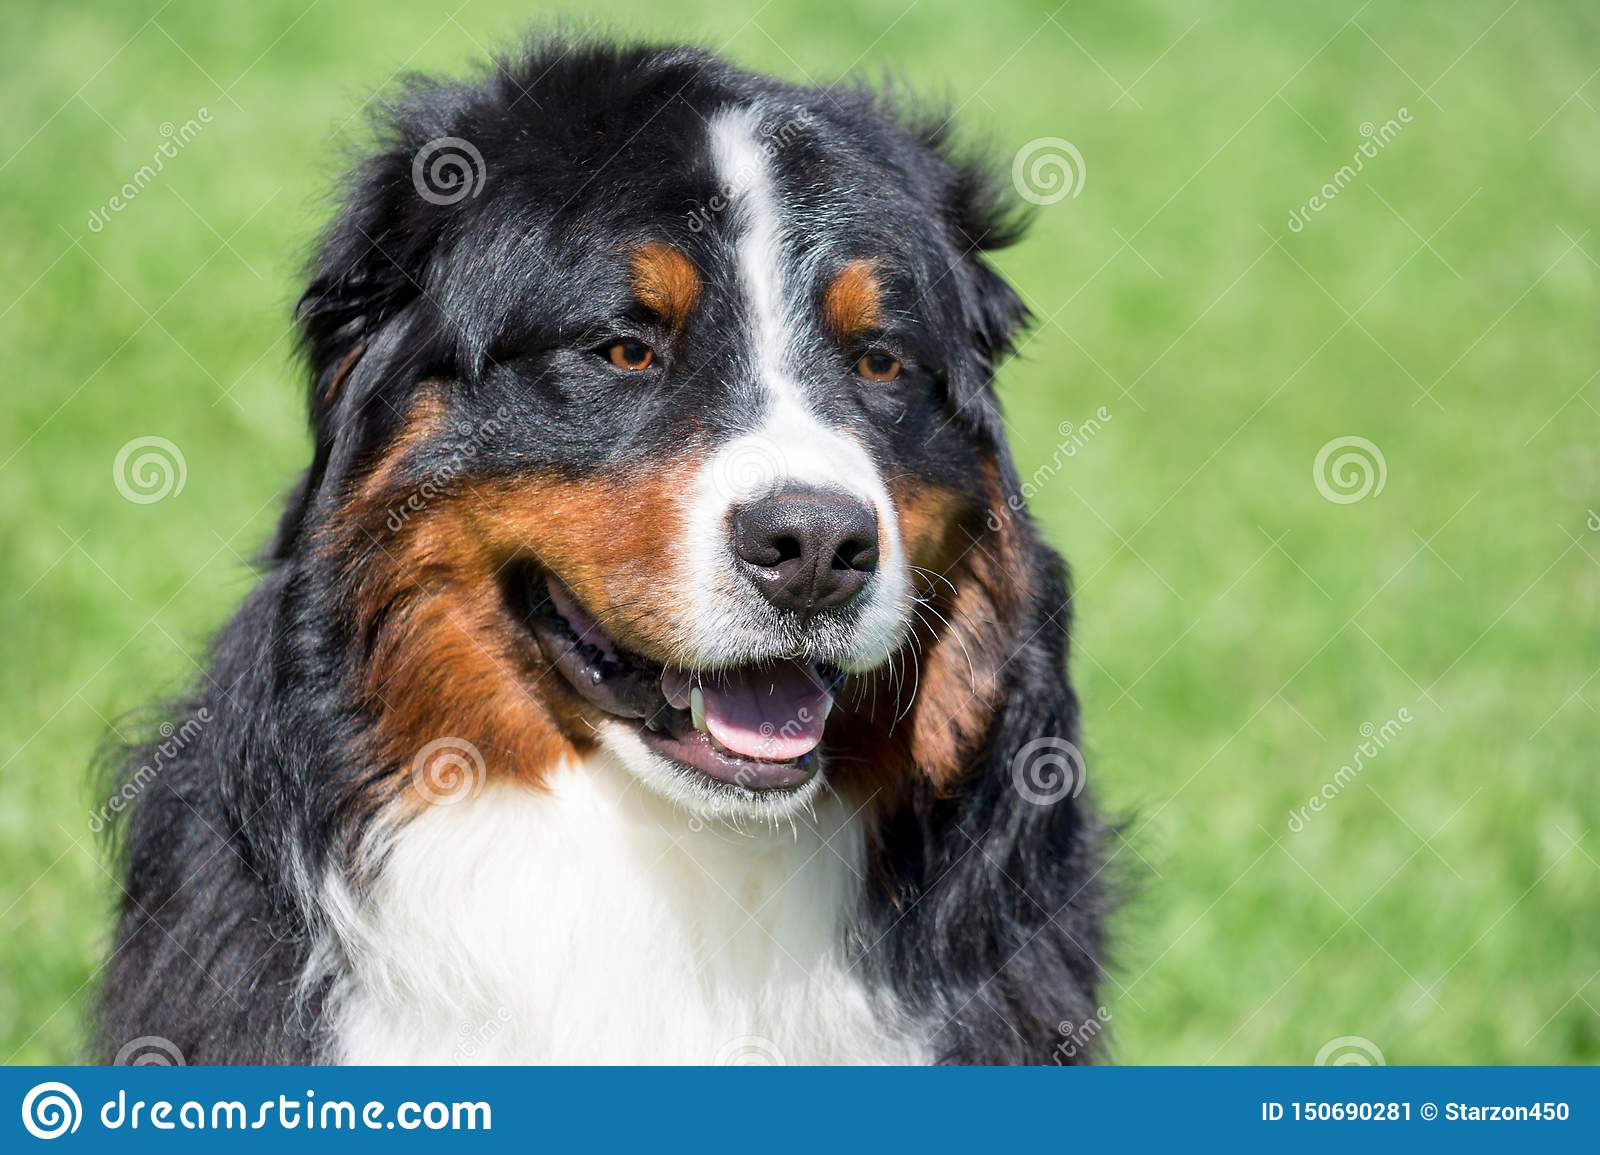 Cute Bernese Mountain Dog Puppy Close Up Berner Sennenhund Or Bernese Cattle Dog Stock Image Image Of Puppy Meadow 150690281